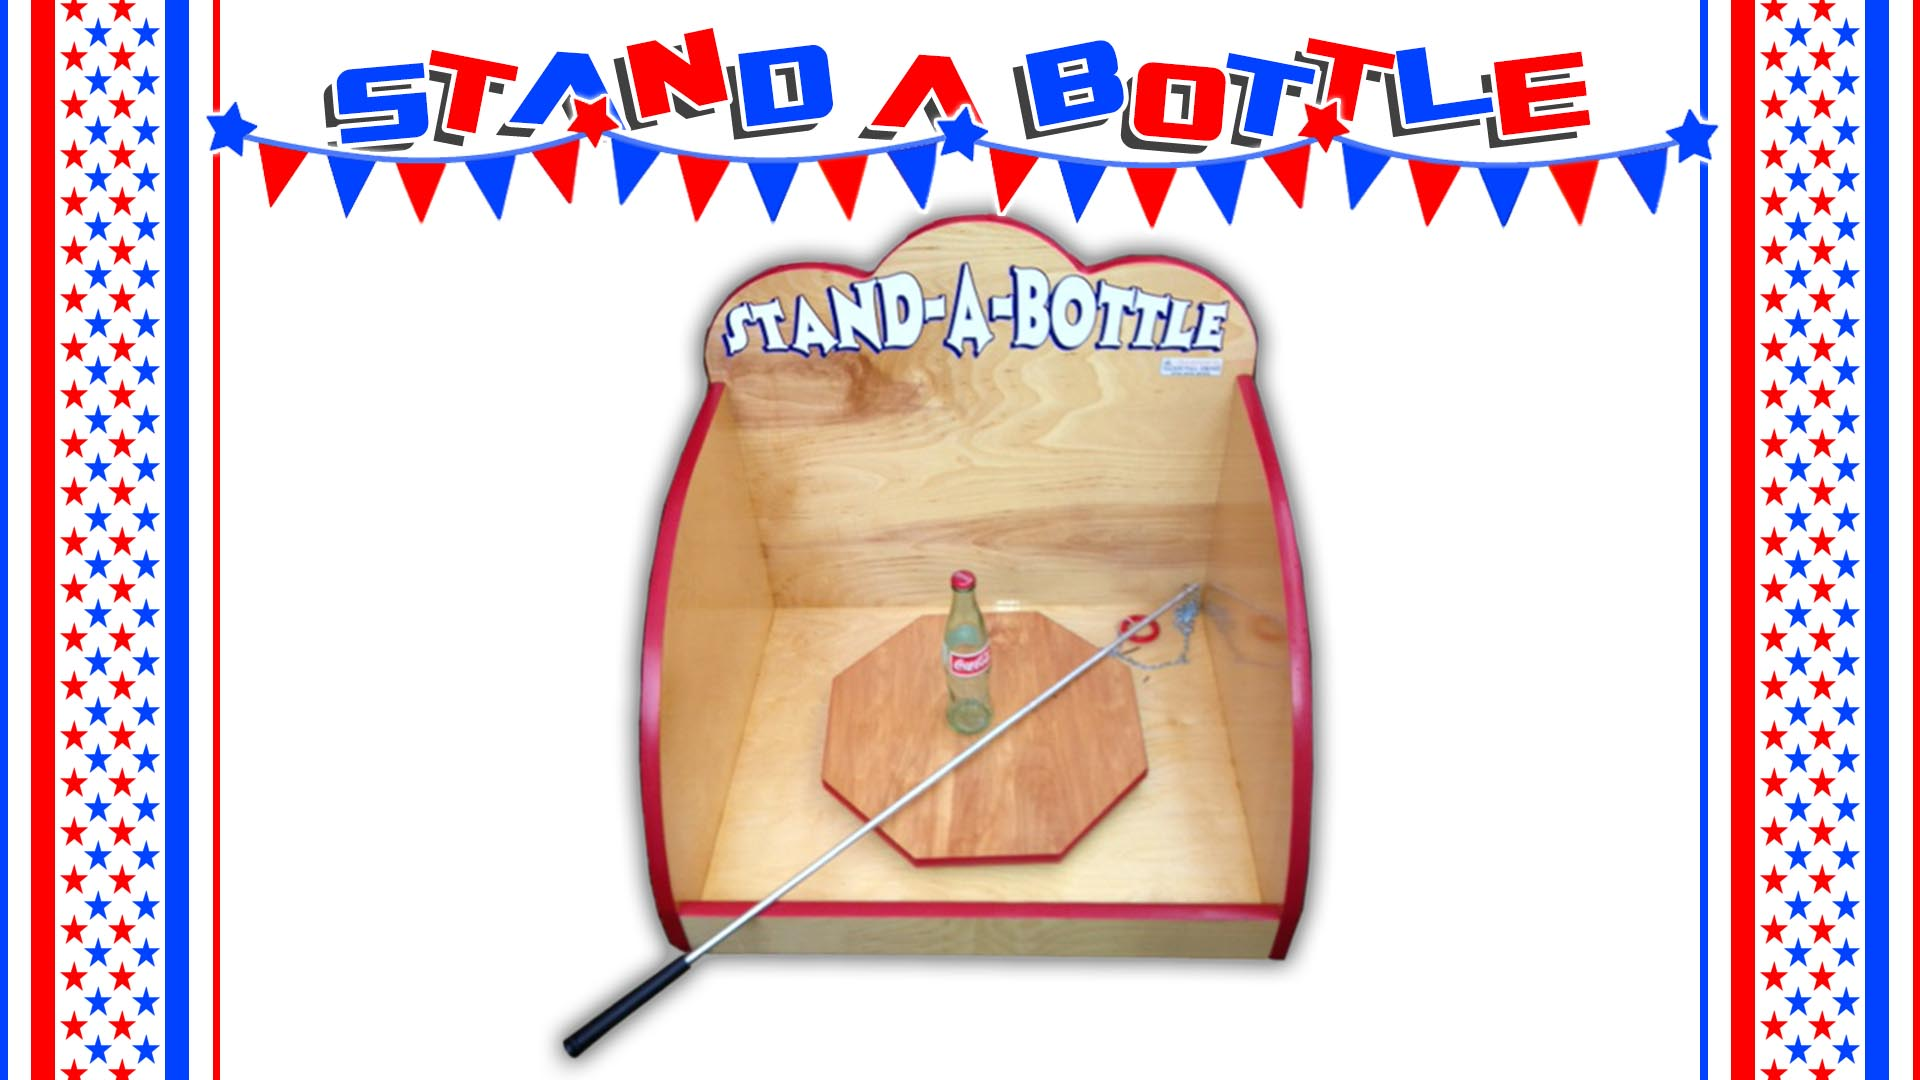 stand the bottle carnival game